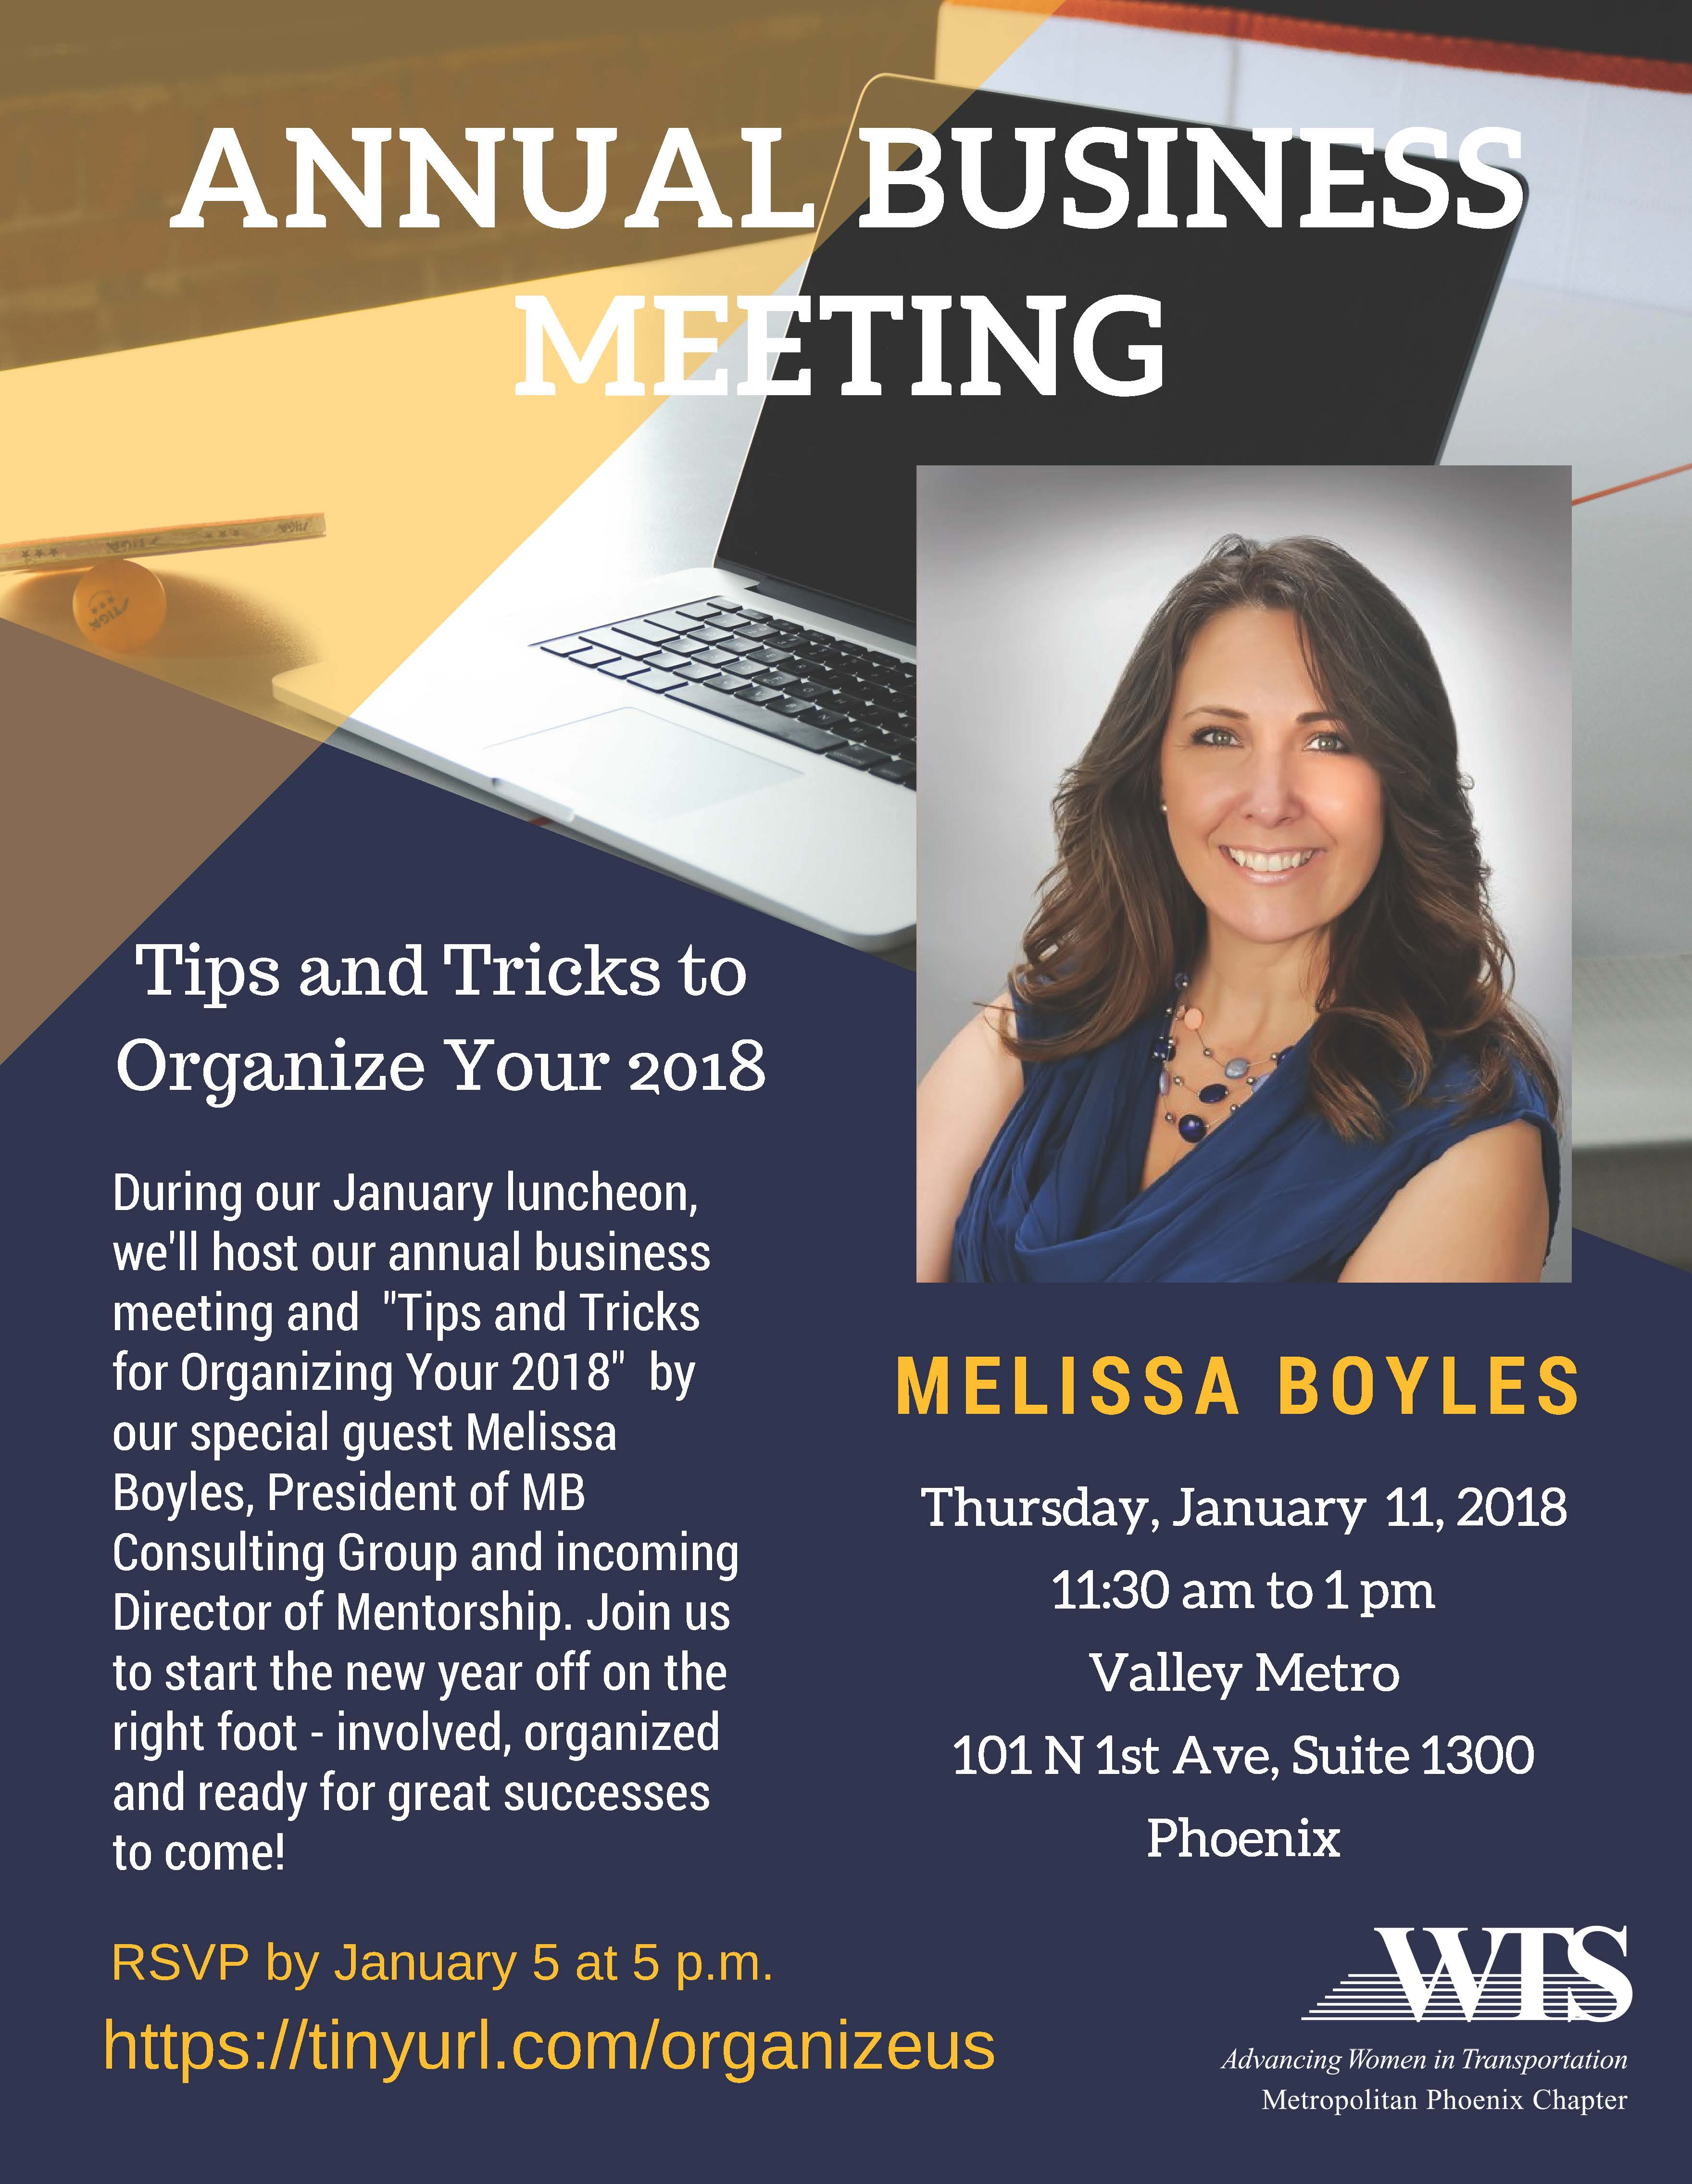 WTS Annual Business Meeting and Tips and Tricks to Organize Your 2018 @ Valley Metro Conference Room | Phoenix | Arizona | United States